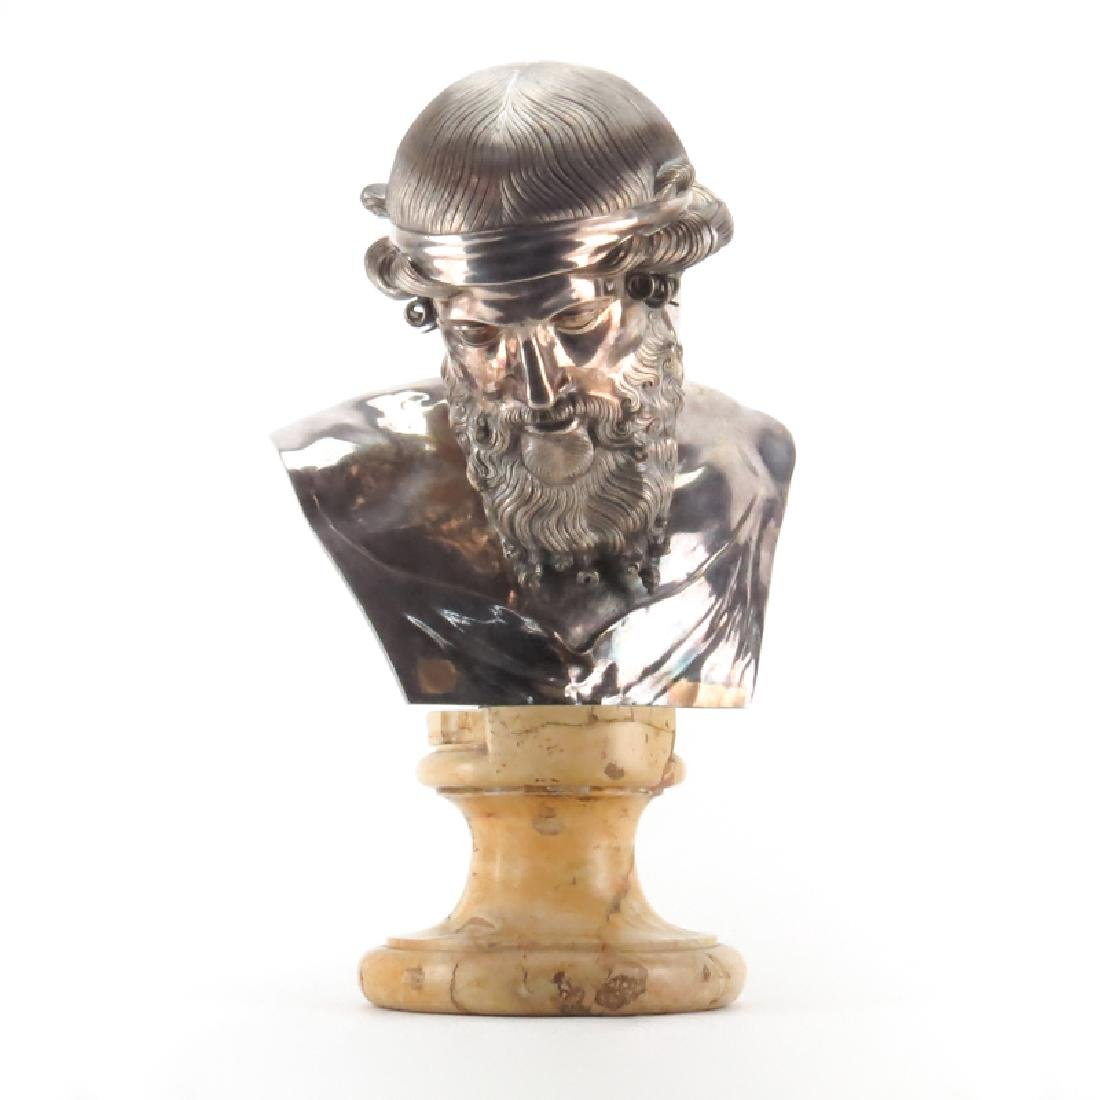 19th Century French Silvered Bronze sculpture of a